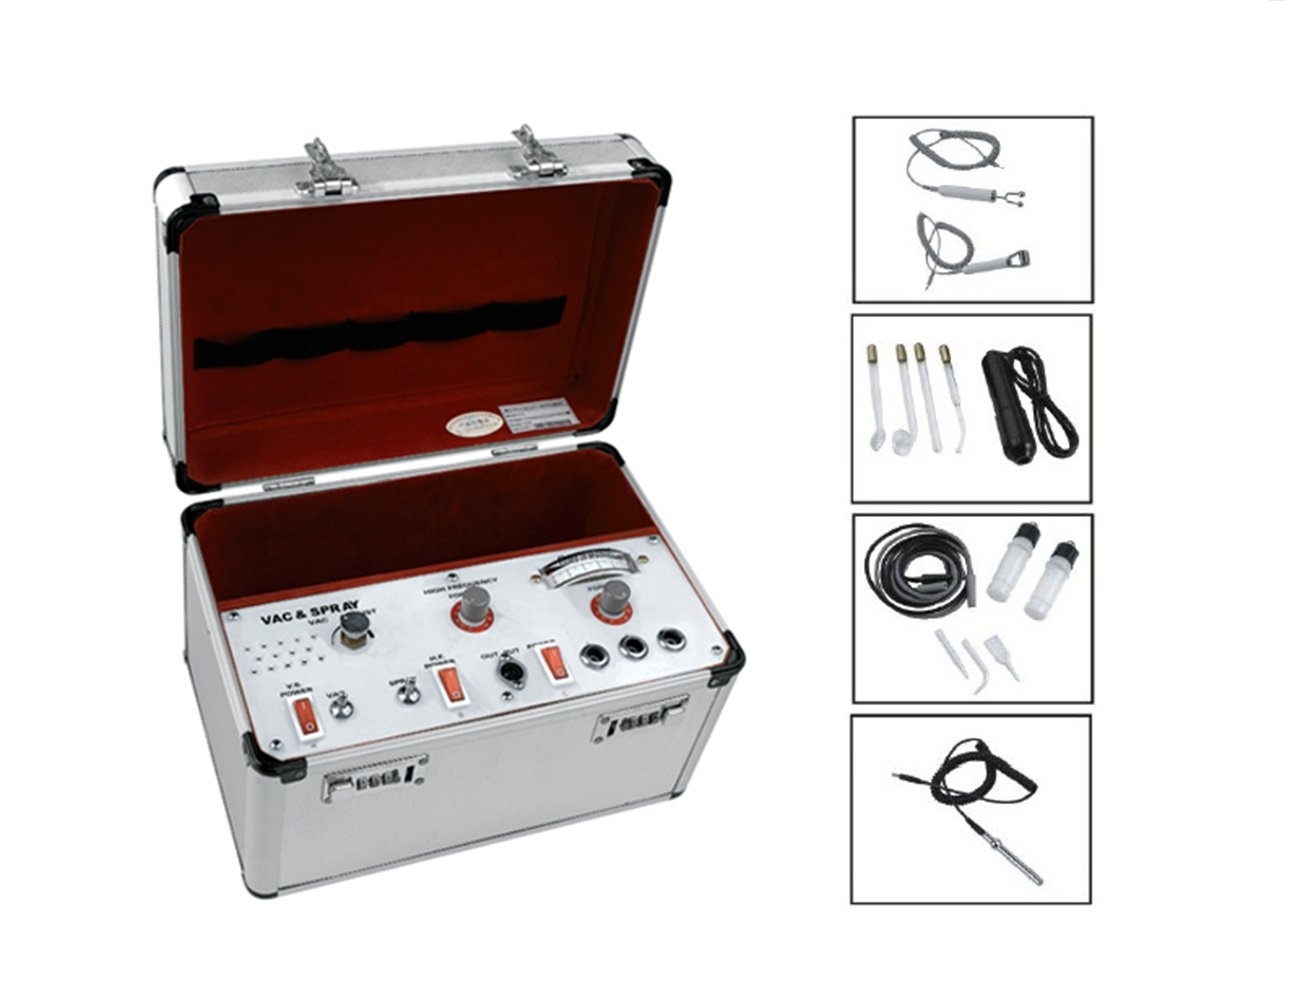 Elitzia ETD215A Suction Spray High Frequency Galvanic 3 in 1 Multiple Beauty Instrument Facial Cleaning Machine